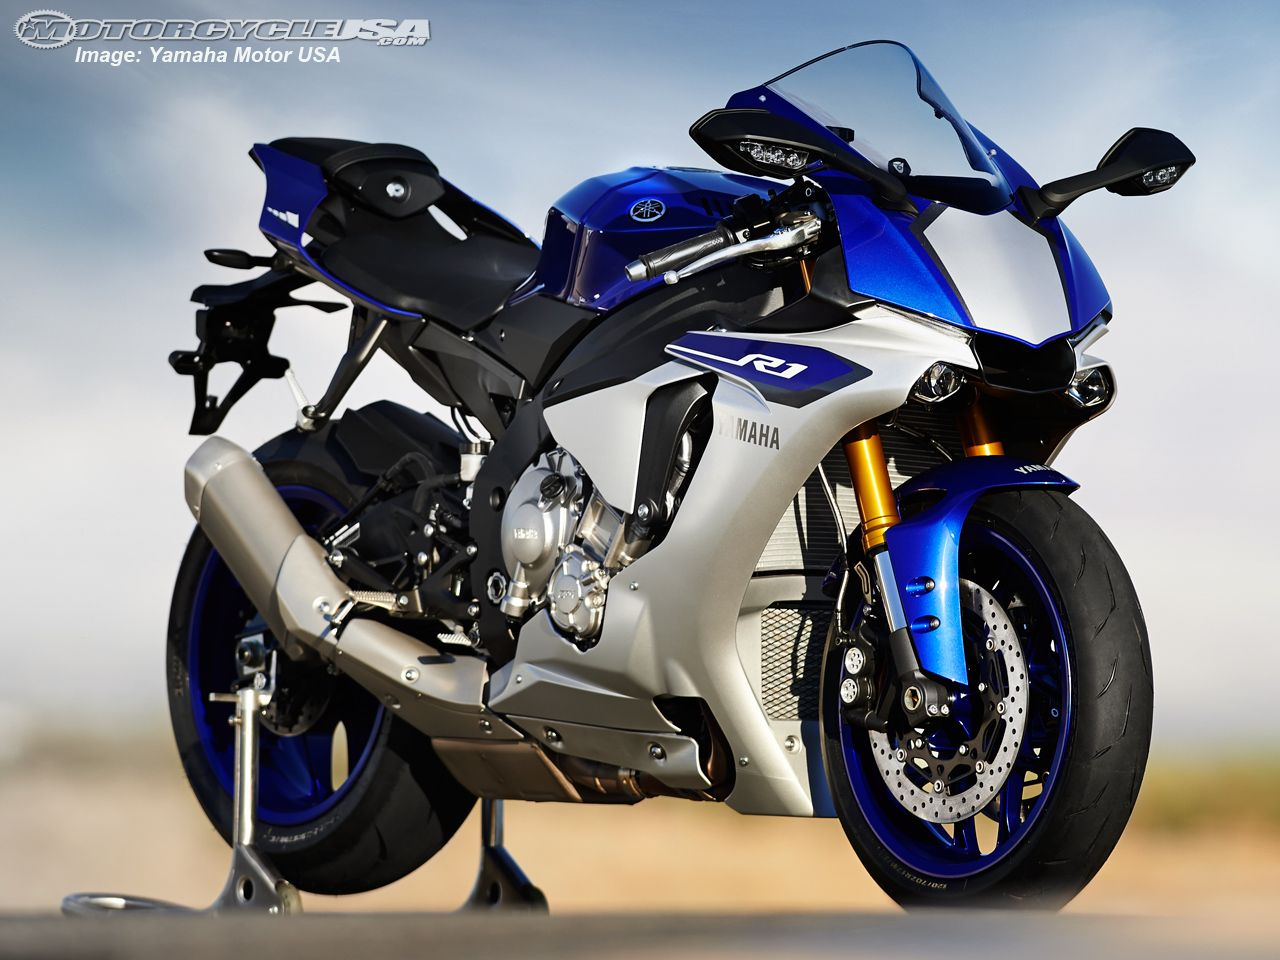 Yamaha YZFRM Supersport Motorcycle Model Home